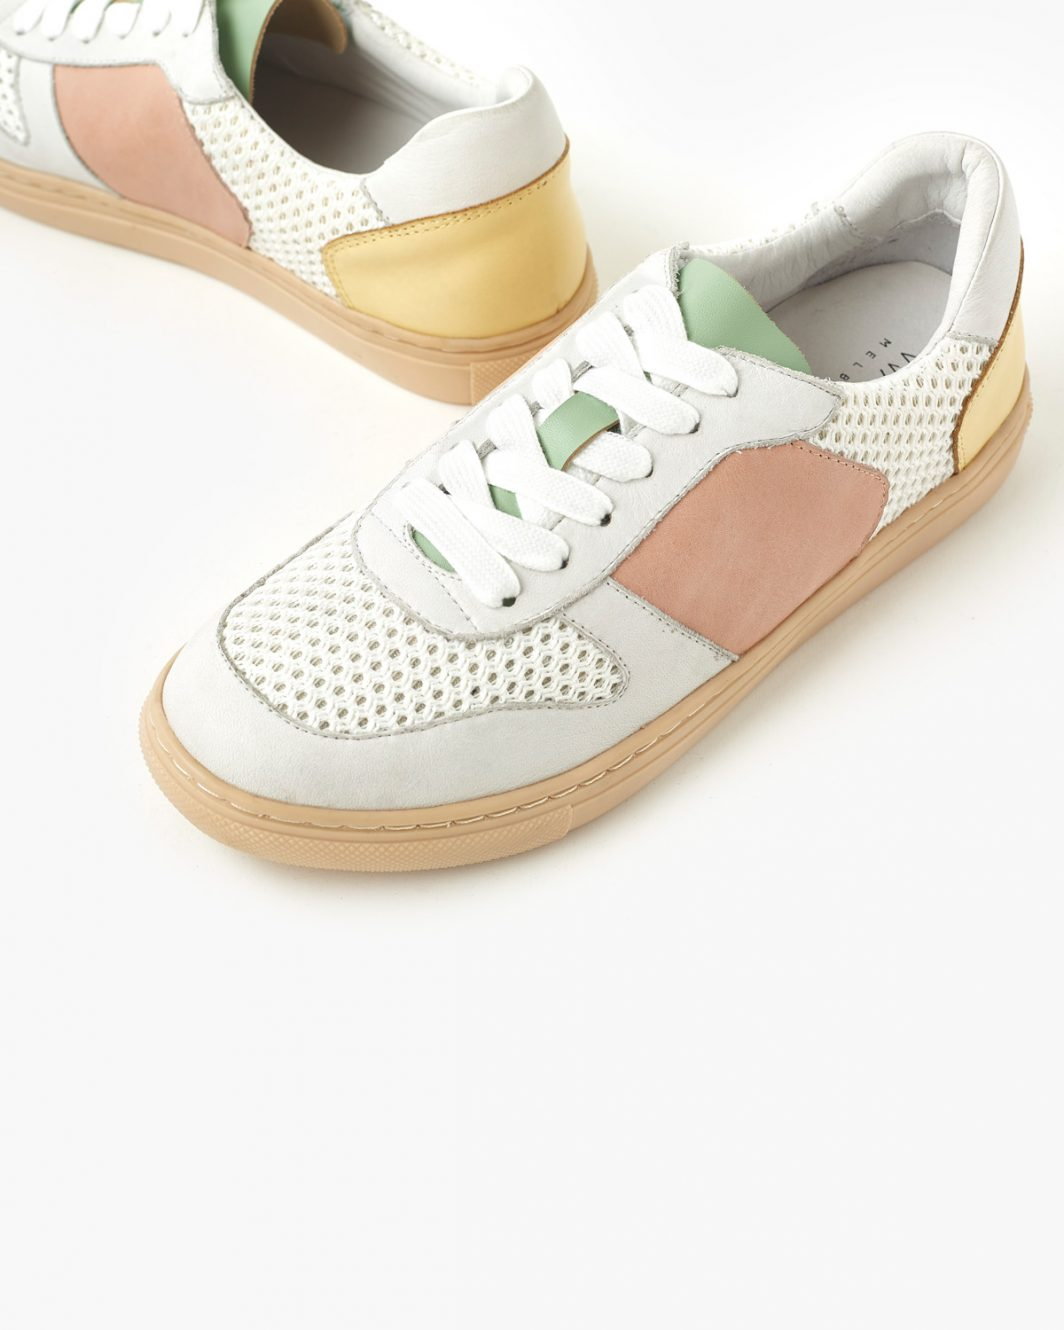 Tao Leather Sneakers - Yellow - 3